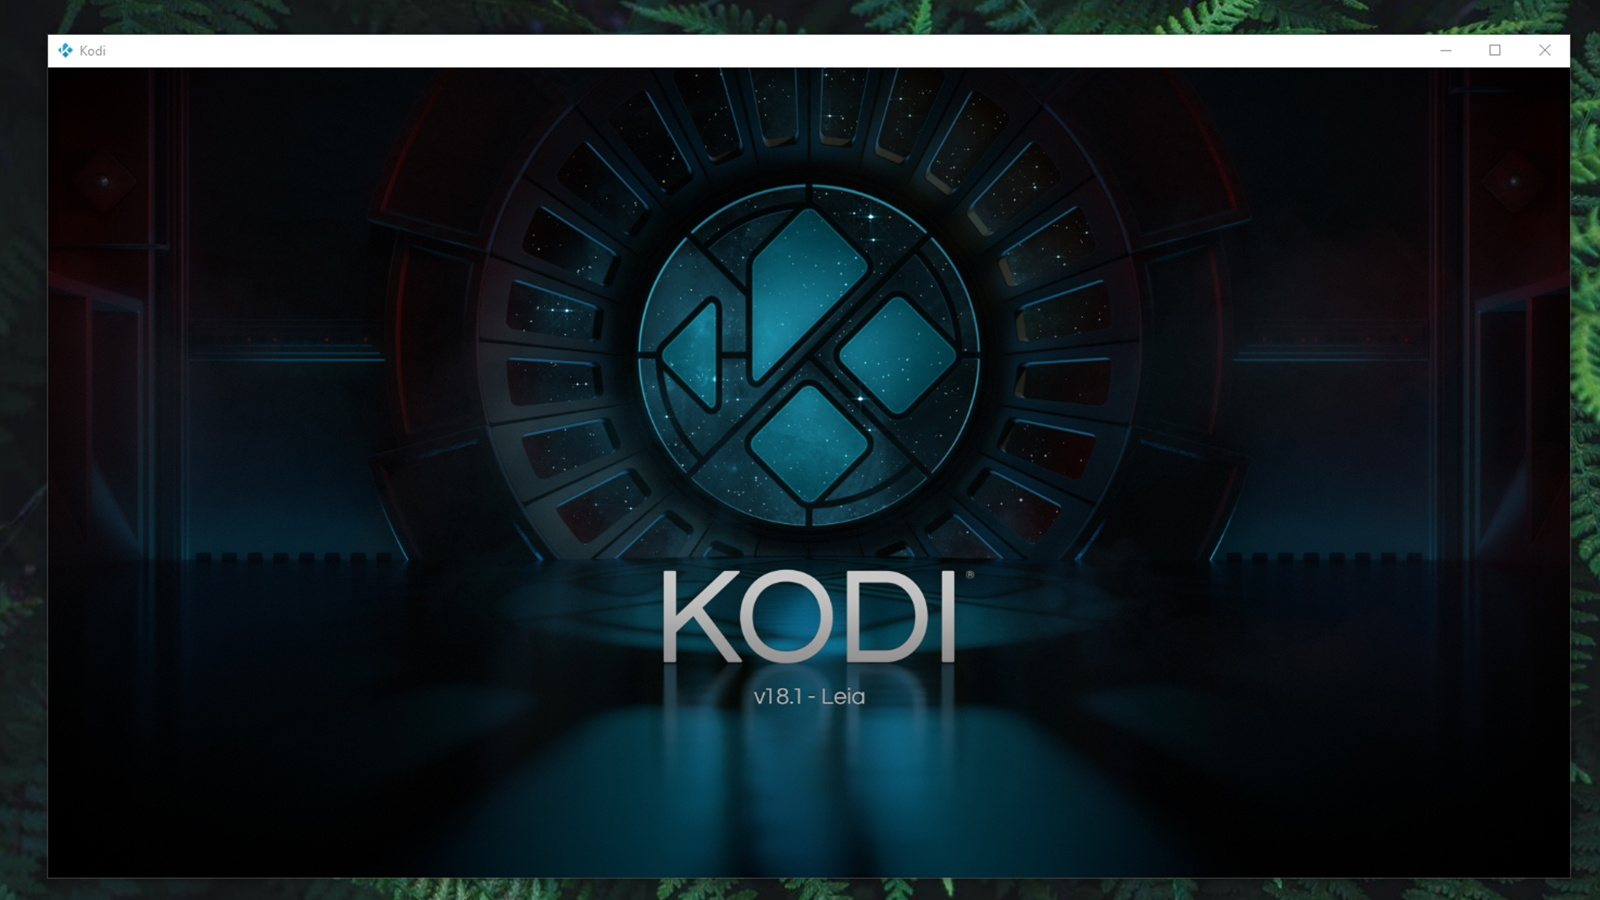 Kodi 18.1 Now Available for Download - Update Your Kodi NOW!